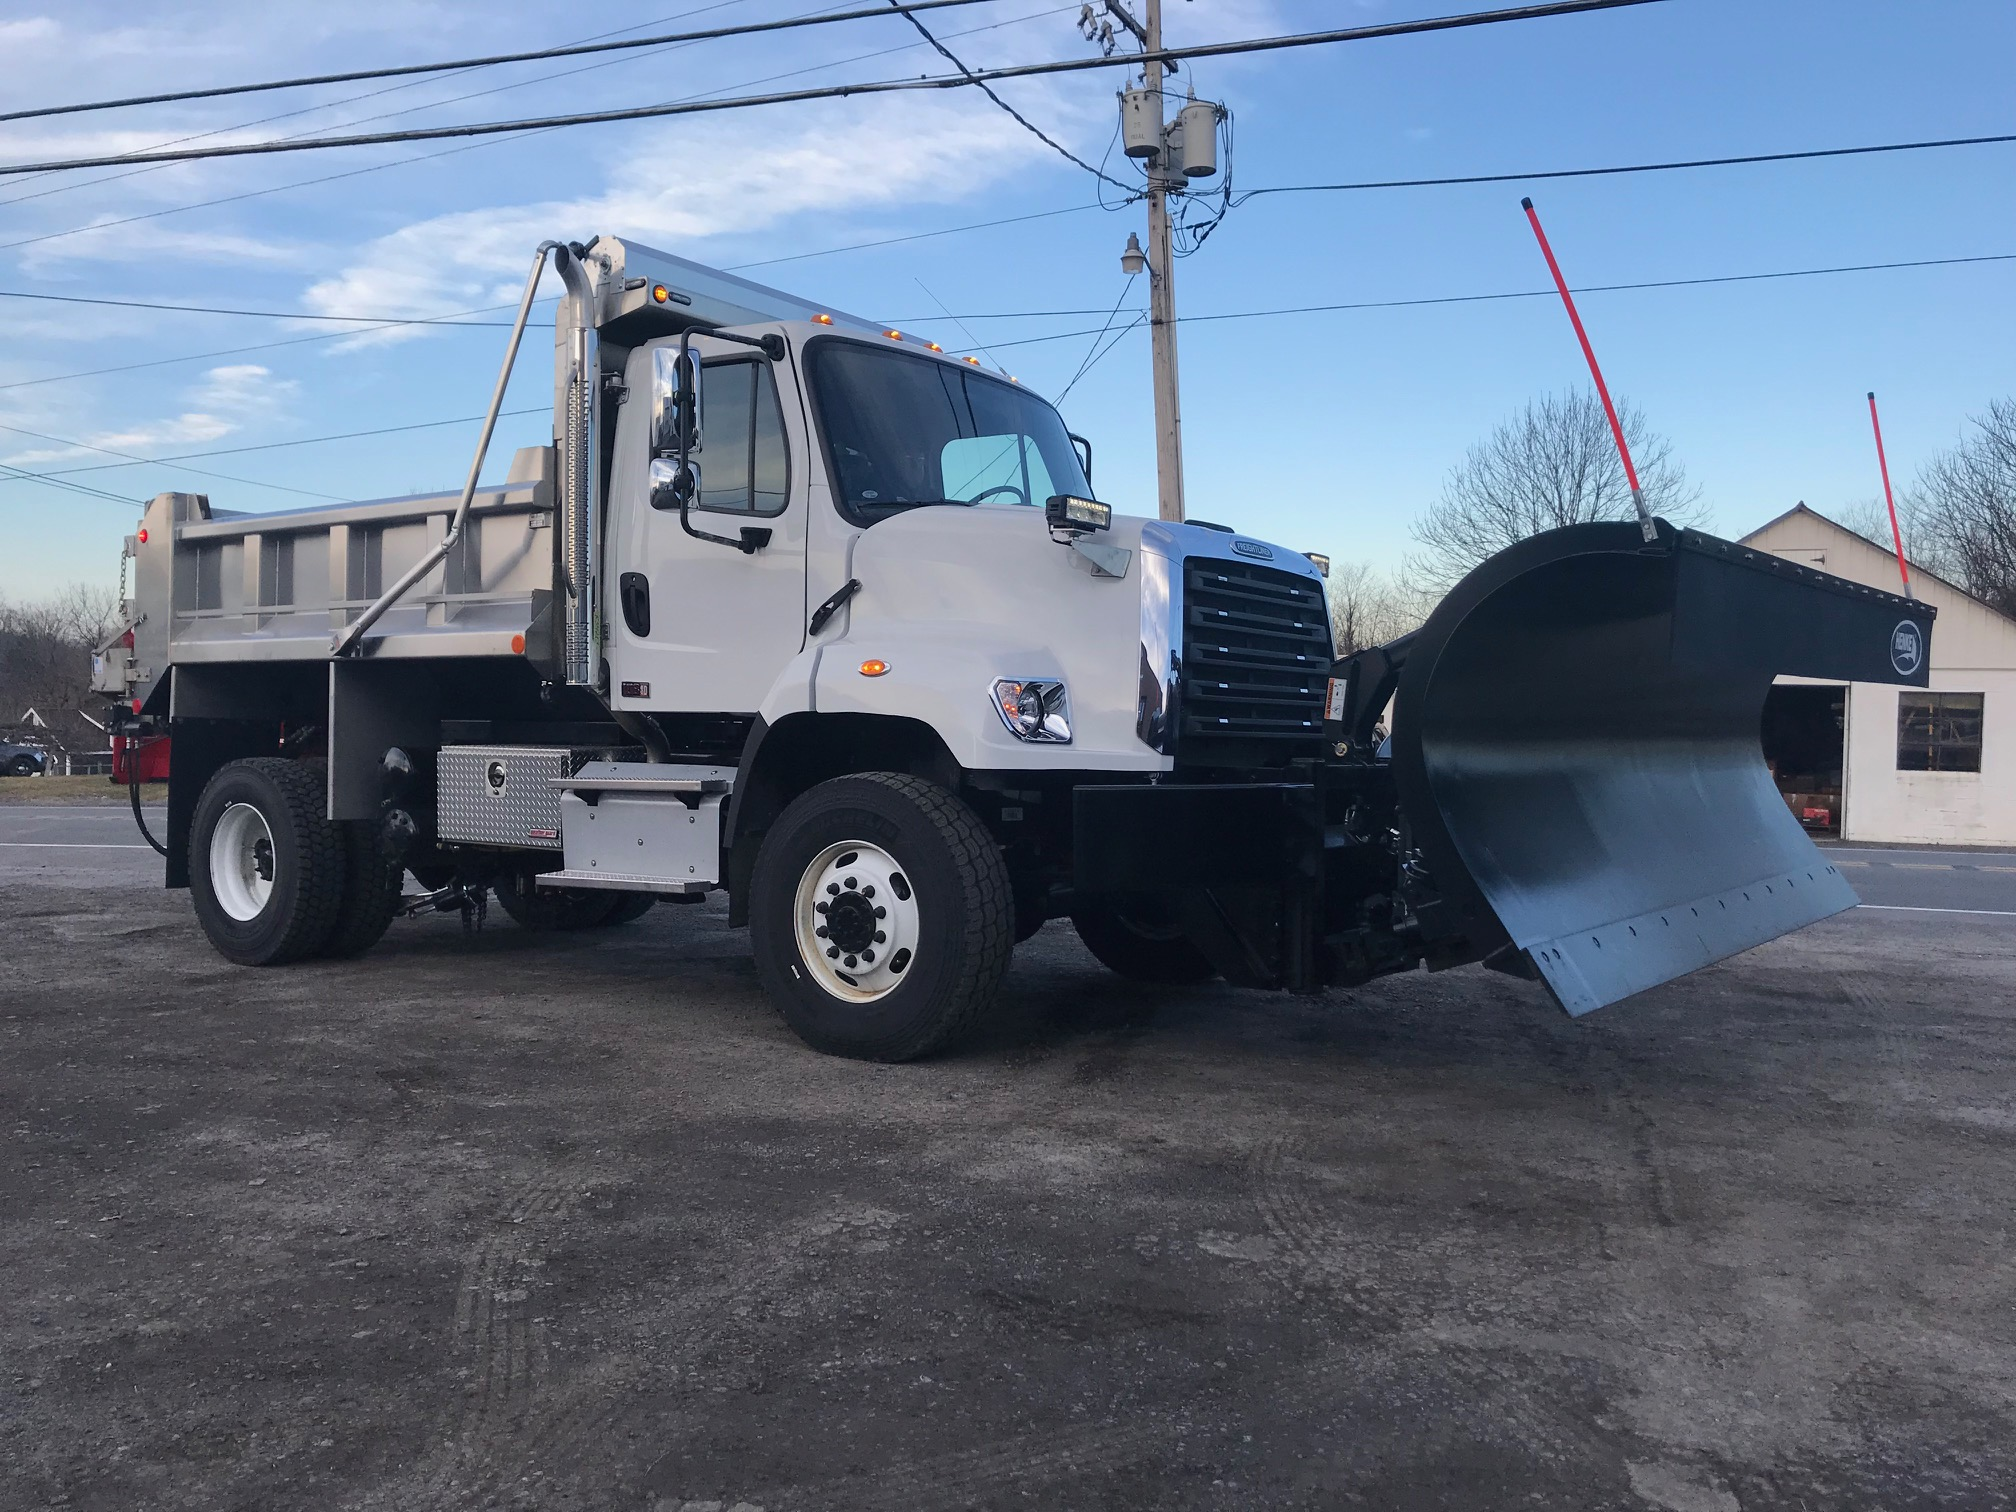 front of white dump truck with black plow